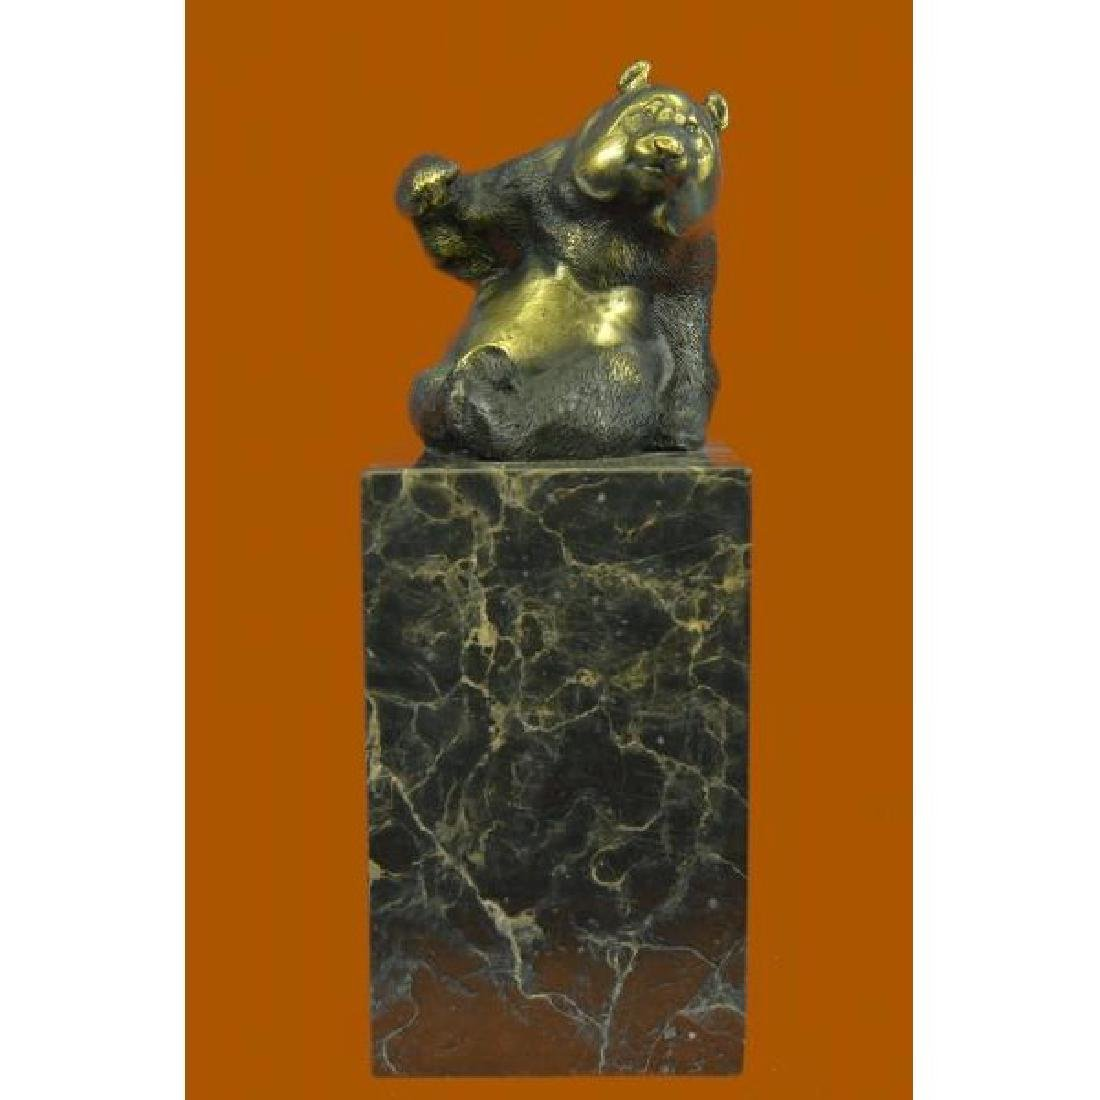 Cute animal bronze sculpture - The Panda - created by